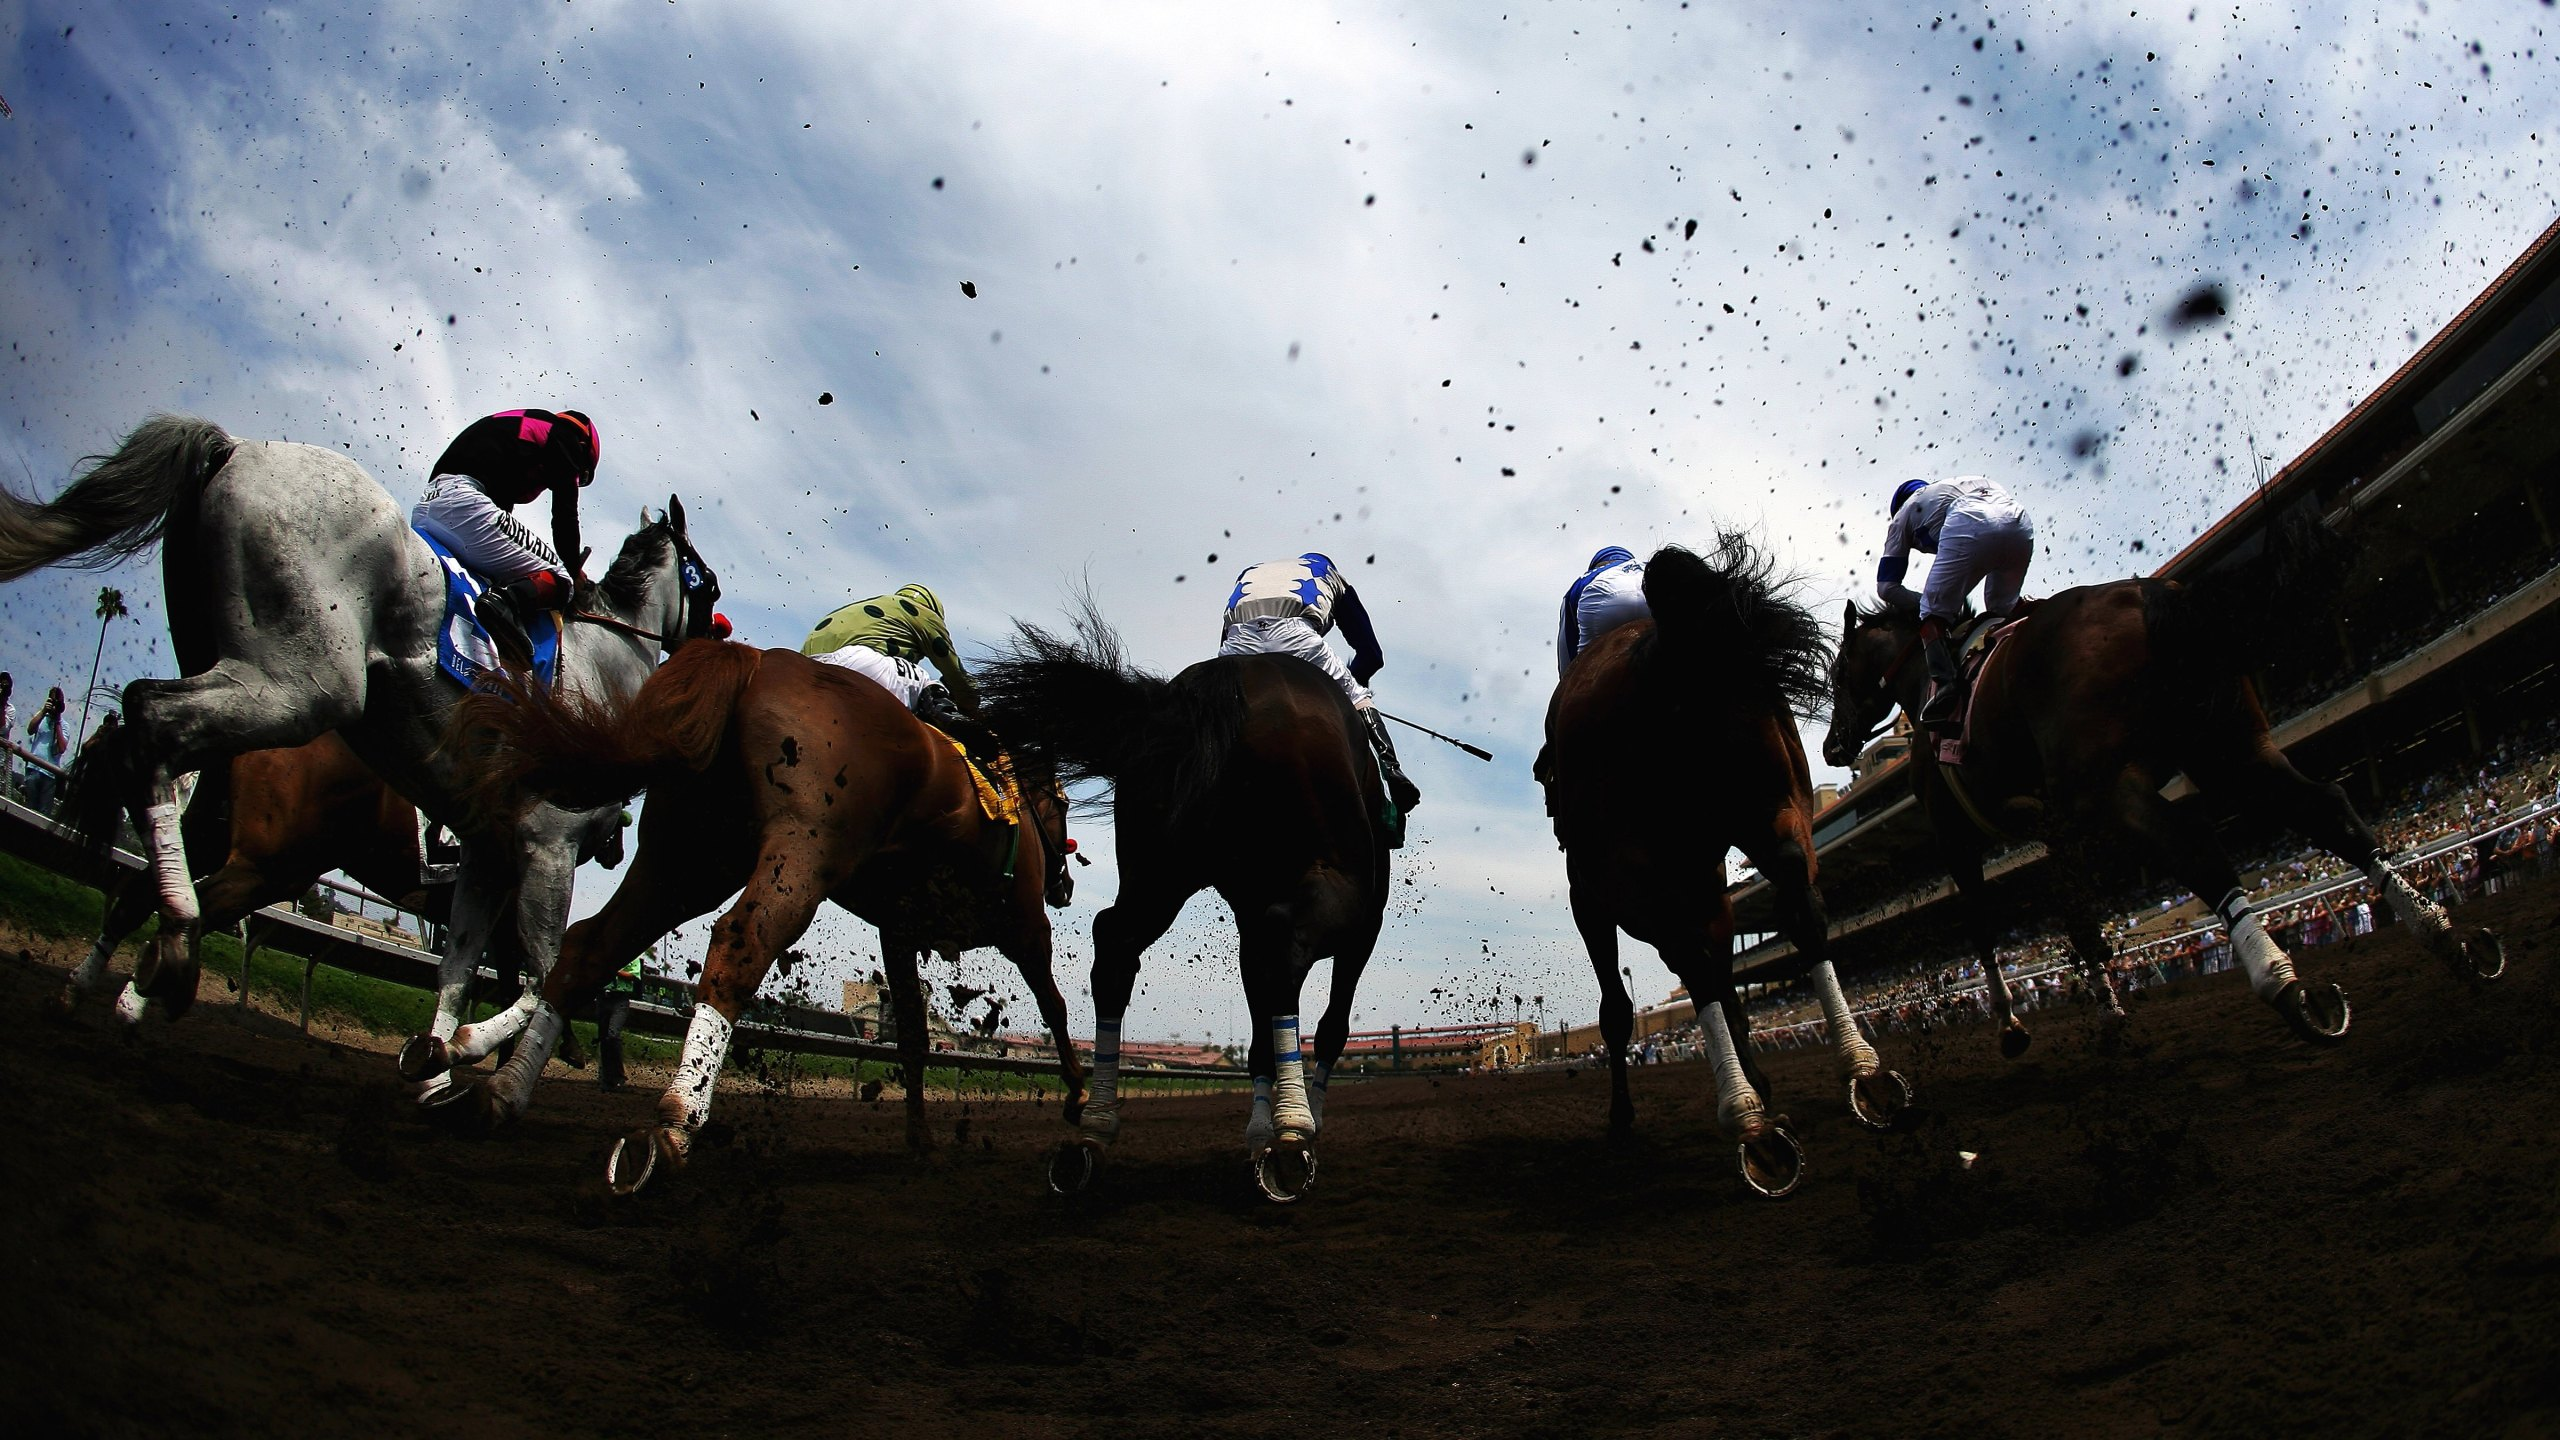 A general view of the horses breaking at the gate at the Del Mar Racetrack on July 19, 2006. (Credit: Donald Miralle/Getty Images)